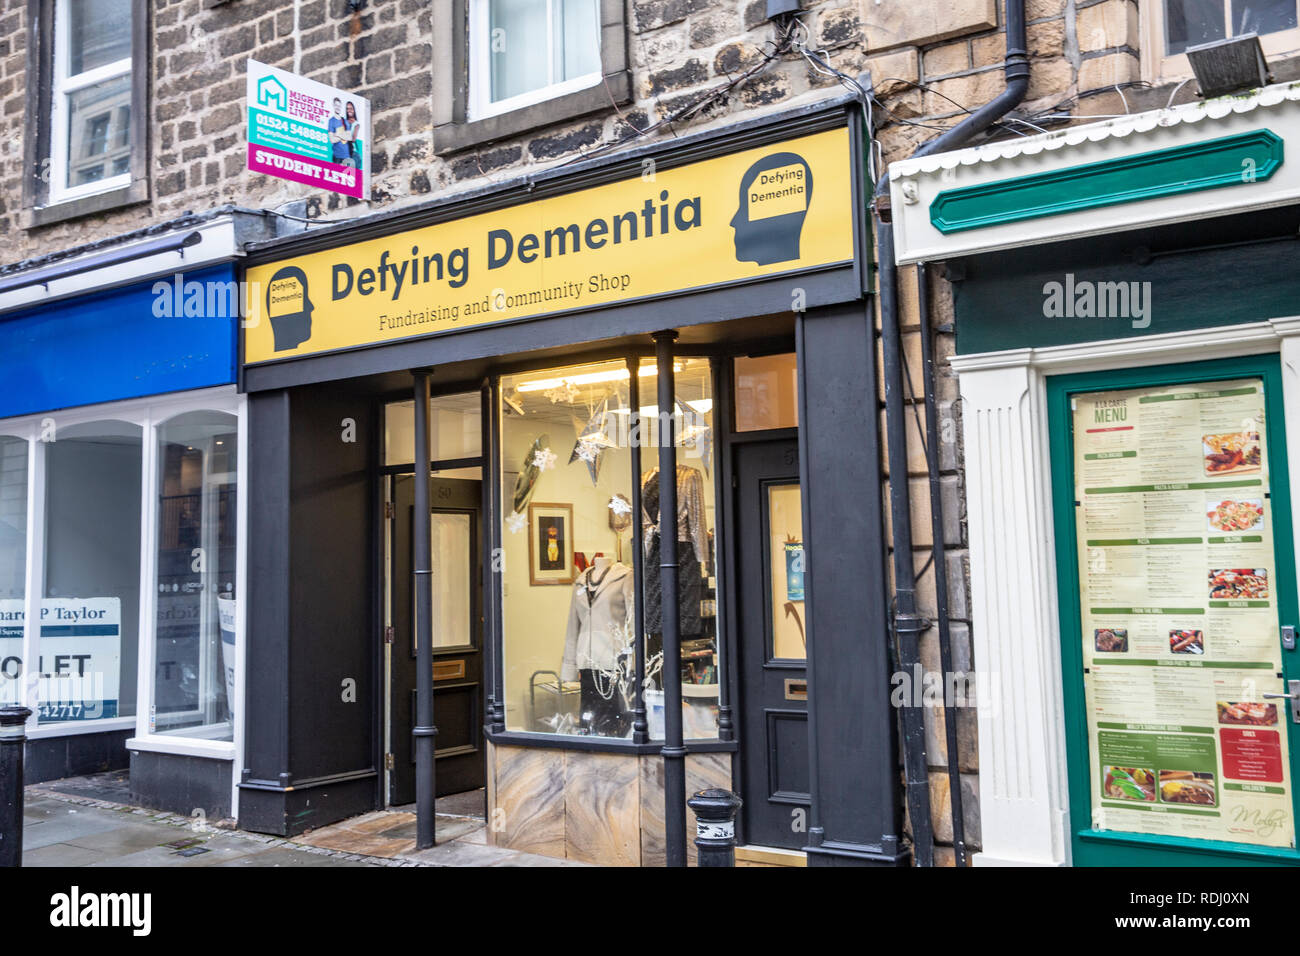 Defying Dementia, fundraising and charitable shop in Lancaster to assist with this illness,Lancashire,England - Stock Image